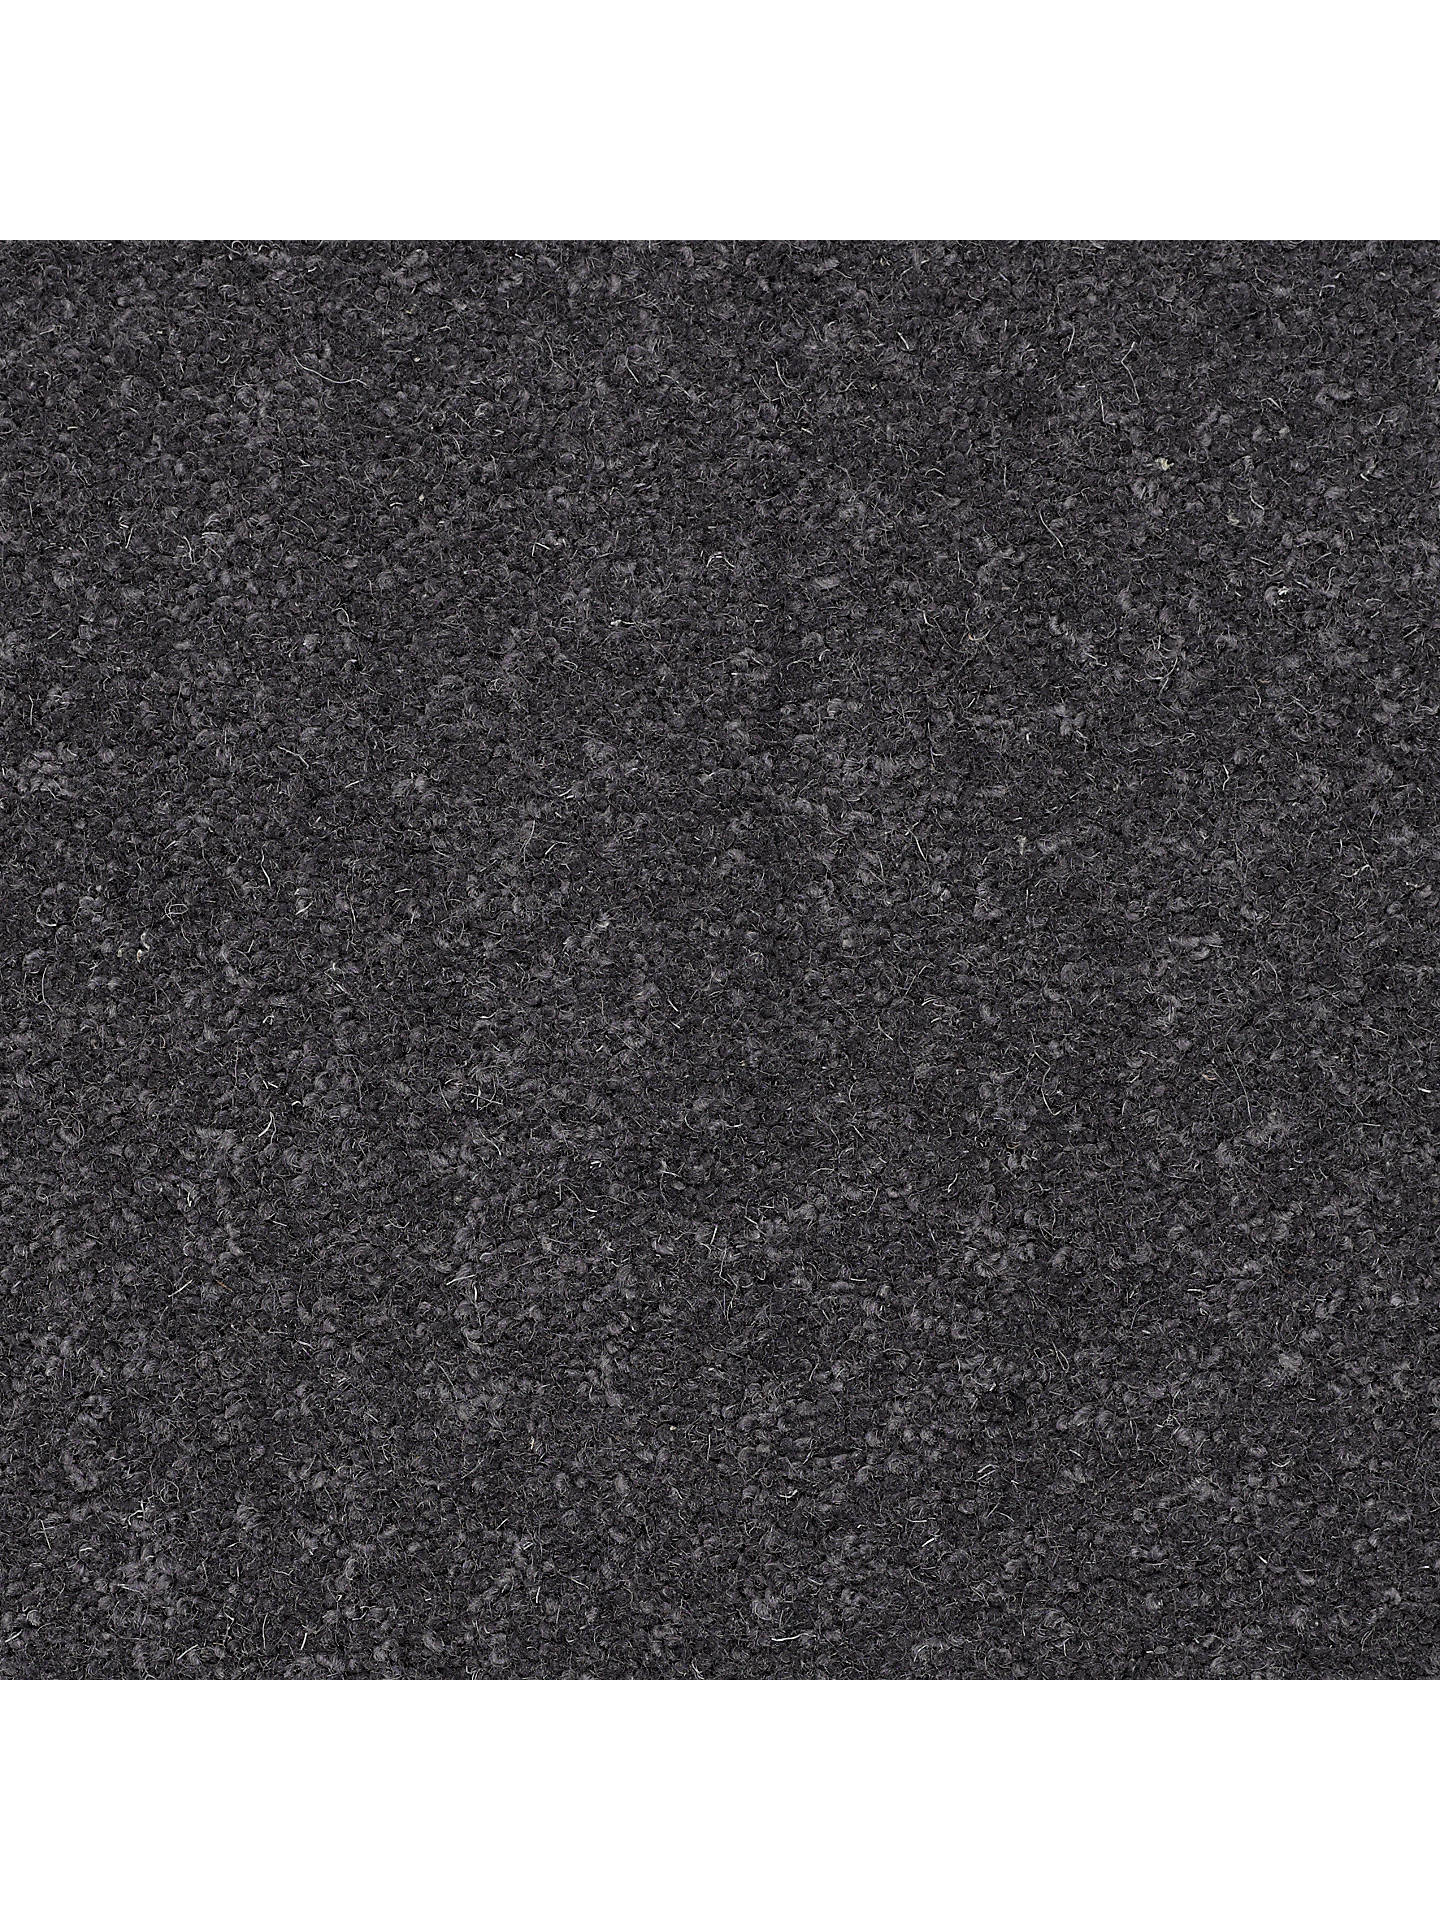 BuyJohn Lewis & Partners New Zealand Wool Rich Plain Twist 40oz Carpet, Dark Steel Online at johnlewis.com